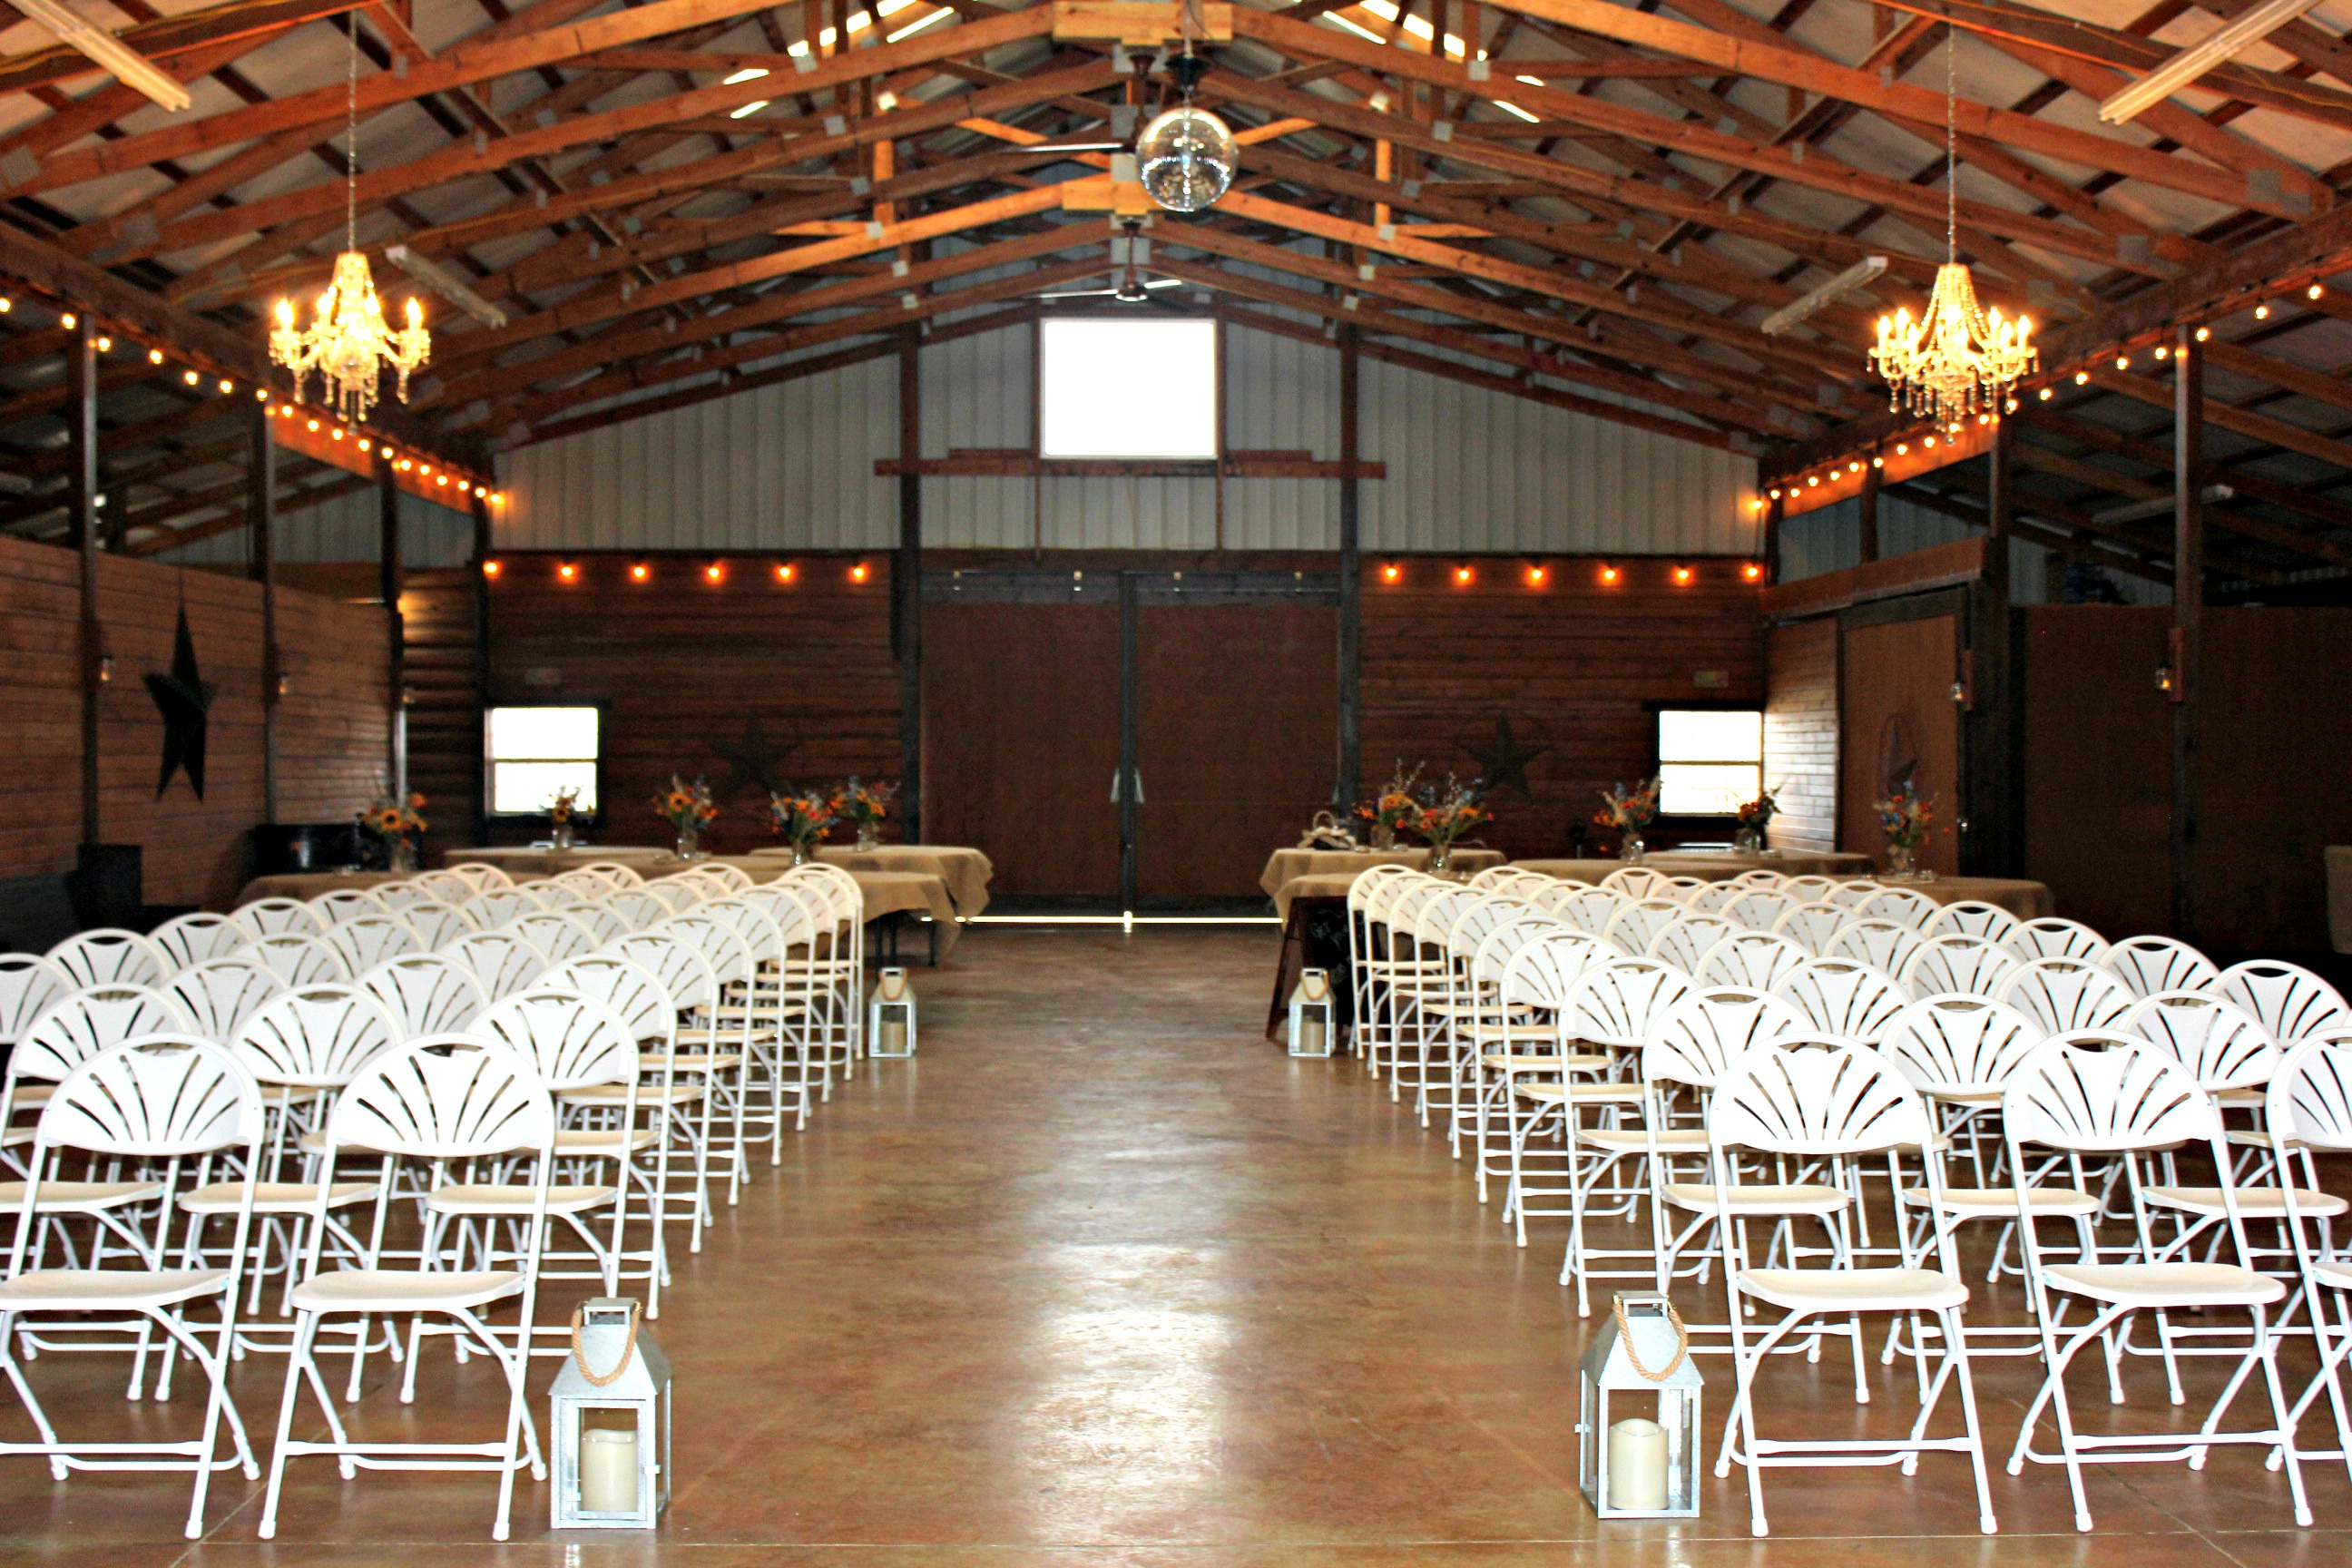 Tulsa wedding venues wedding venues with indoor and outdoor options tulsa wedding venues 8330 junglespirit Gallery